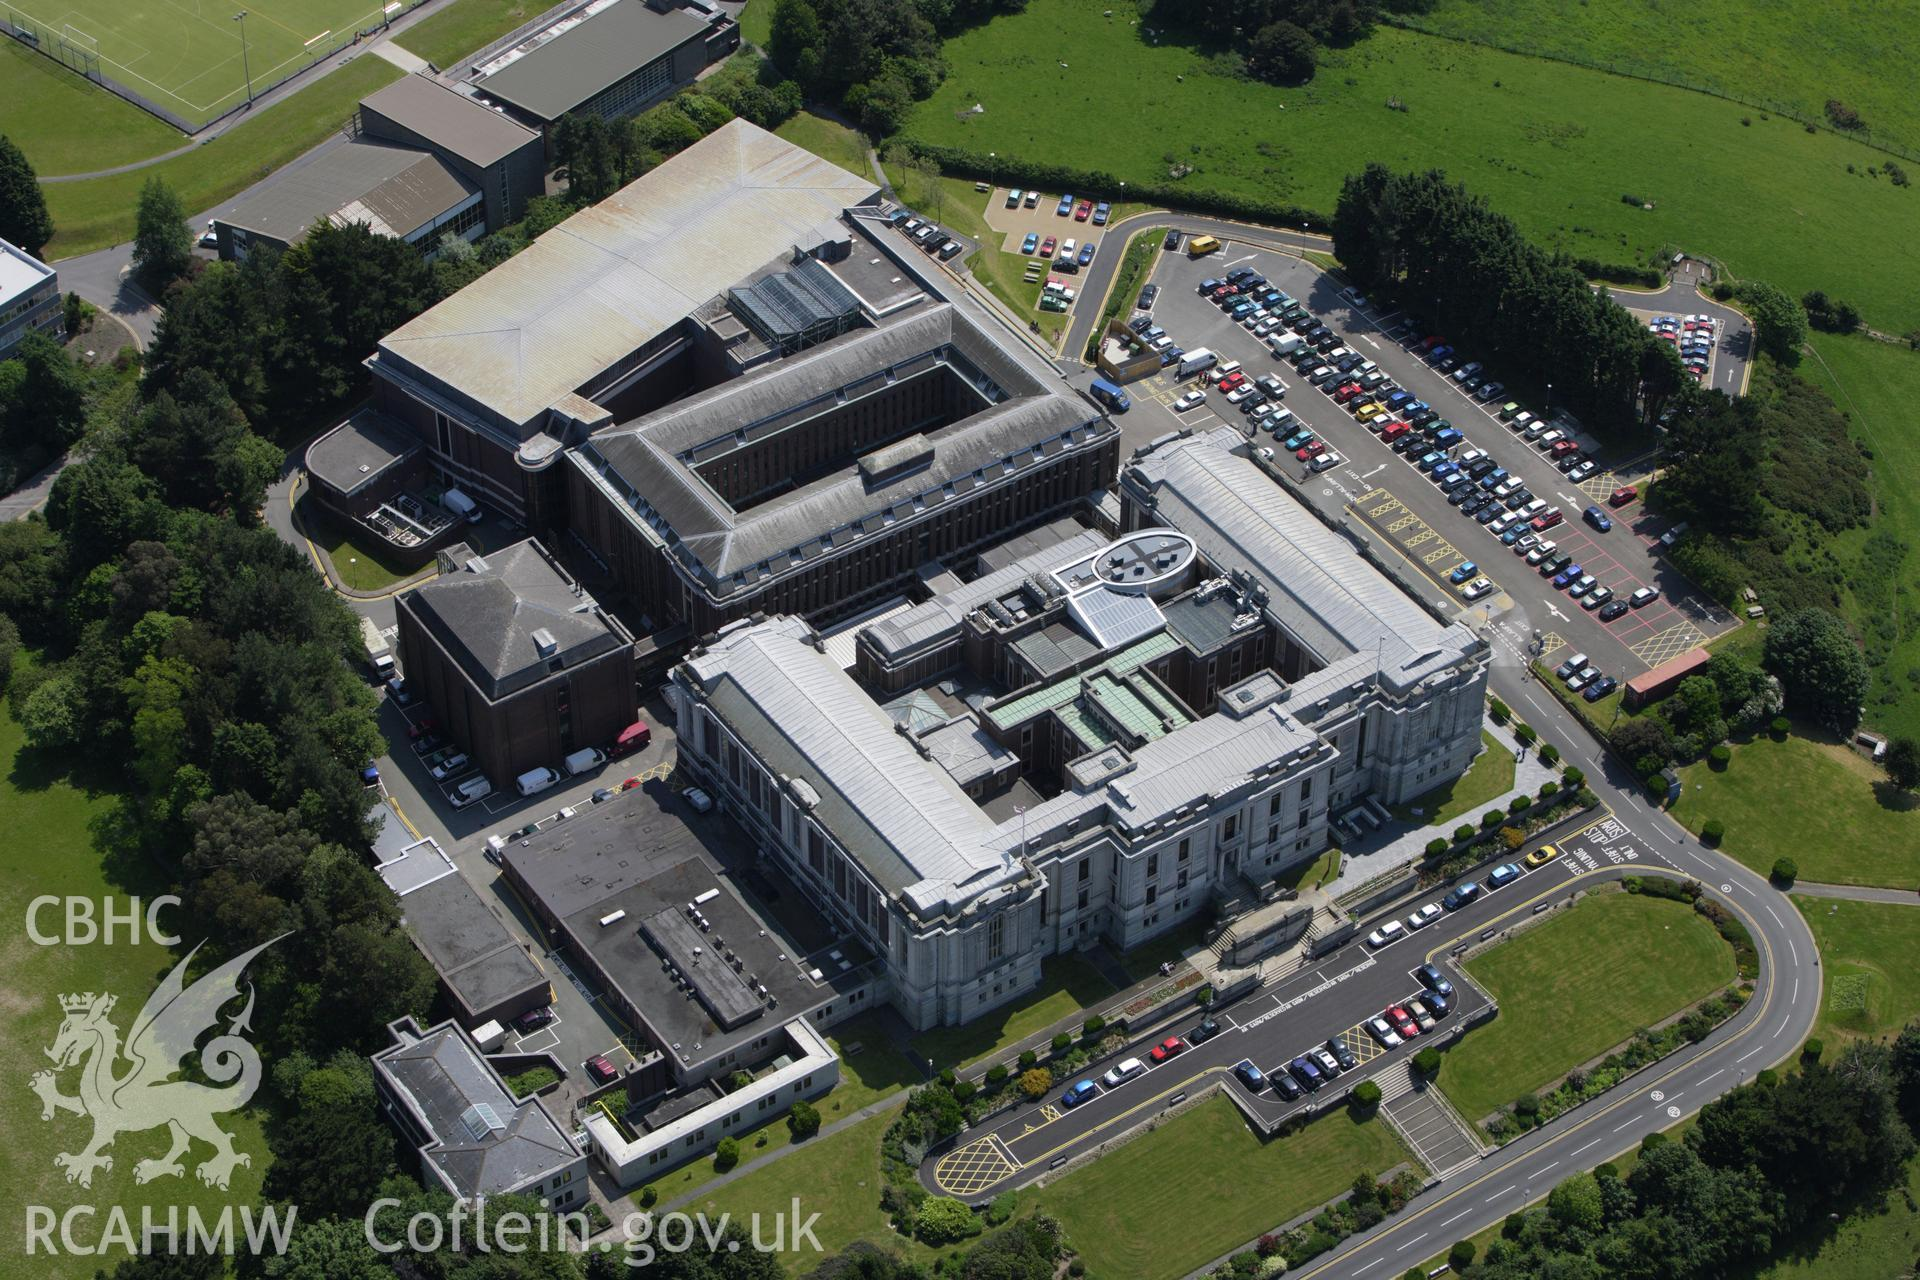 RCAHMW colour oblique aerial photograph of National Library of Wales, Aberystwyth. Taken on 02 June 2009 by Toby Driver